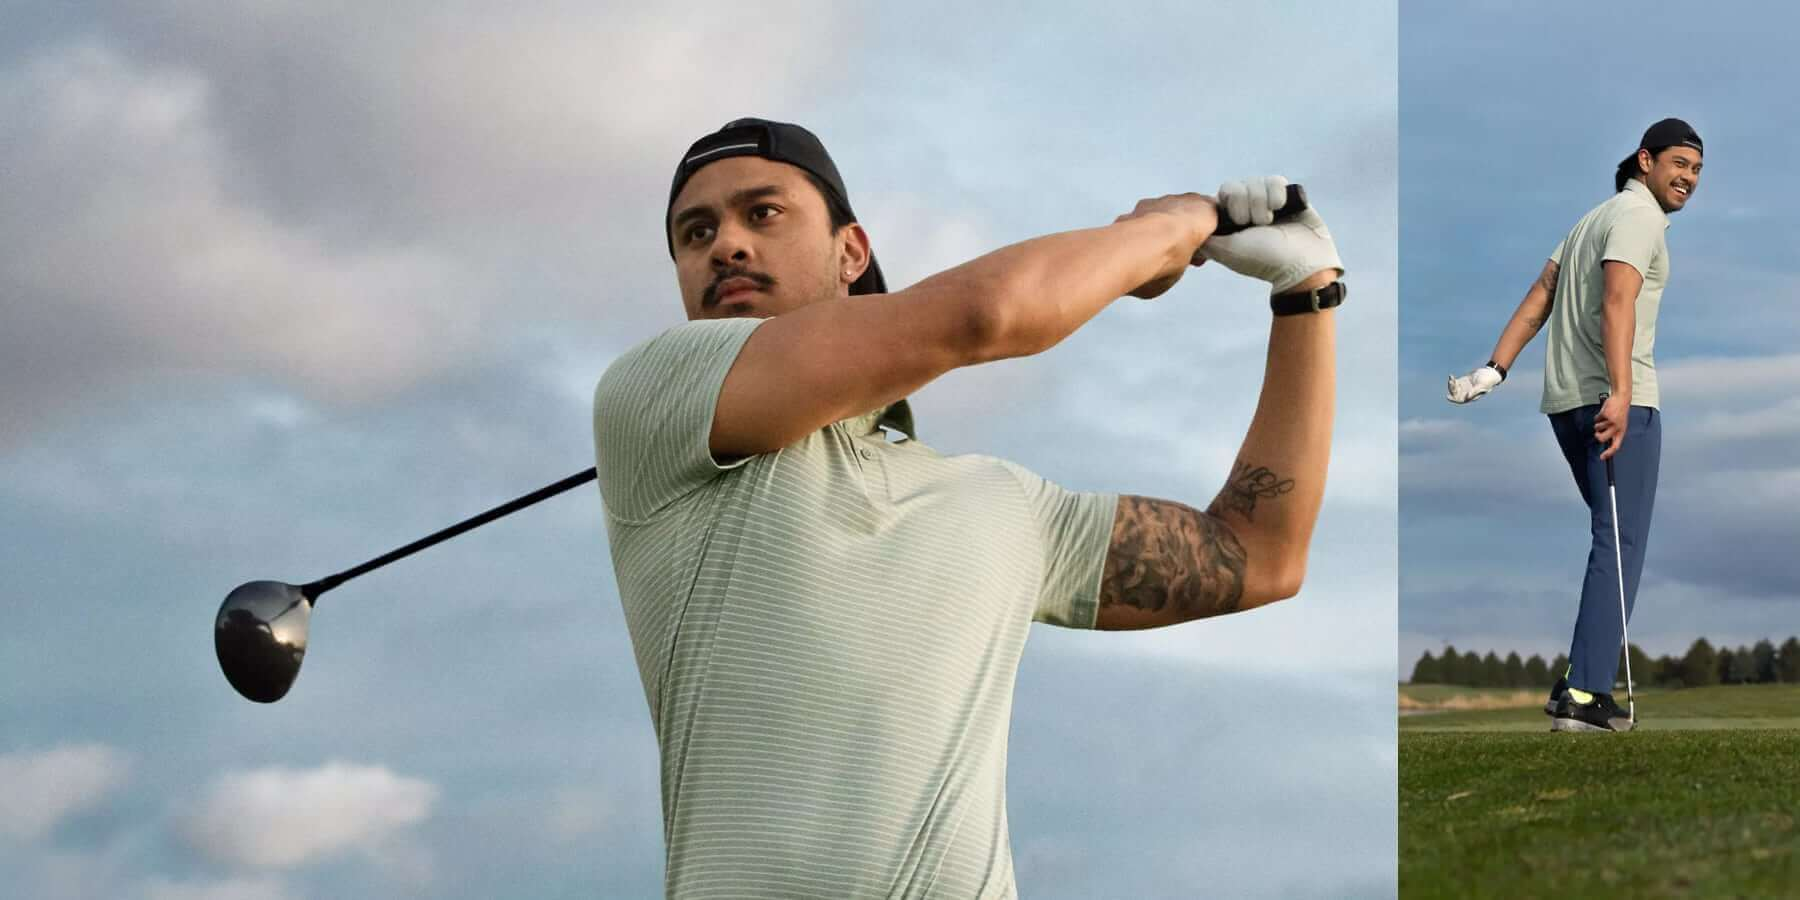 Best new men's golf gear and attire in 2021